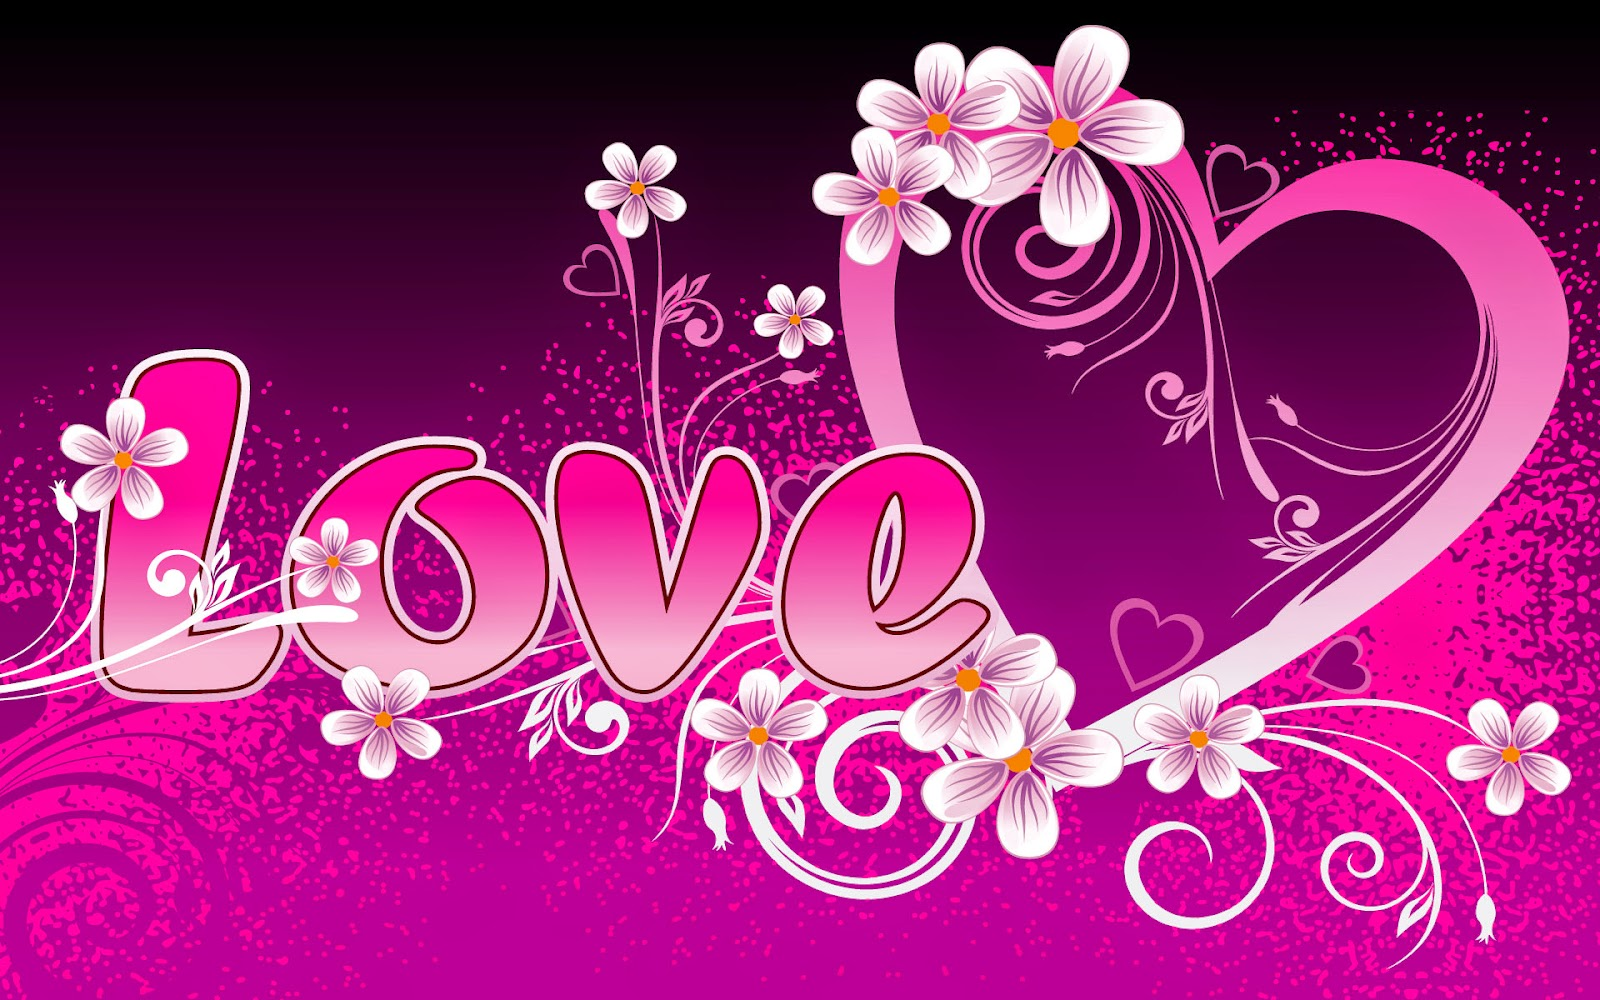 Love Wallpapers Only : HD WALLPAPER: most beautiful love wallpapers(High Definition) High Quality Desktop Wallpapers